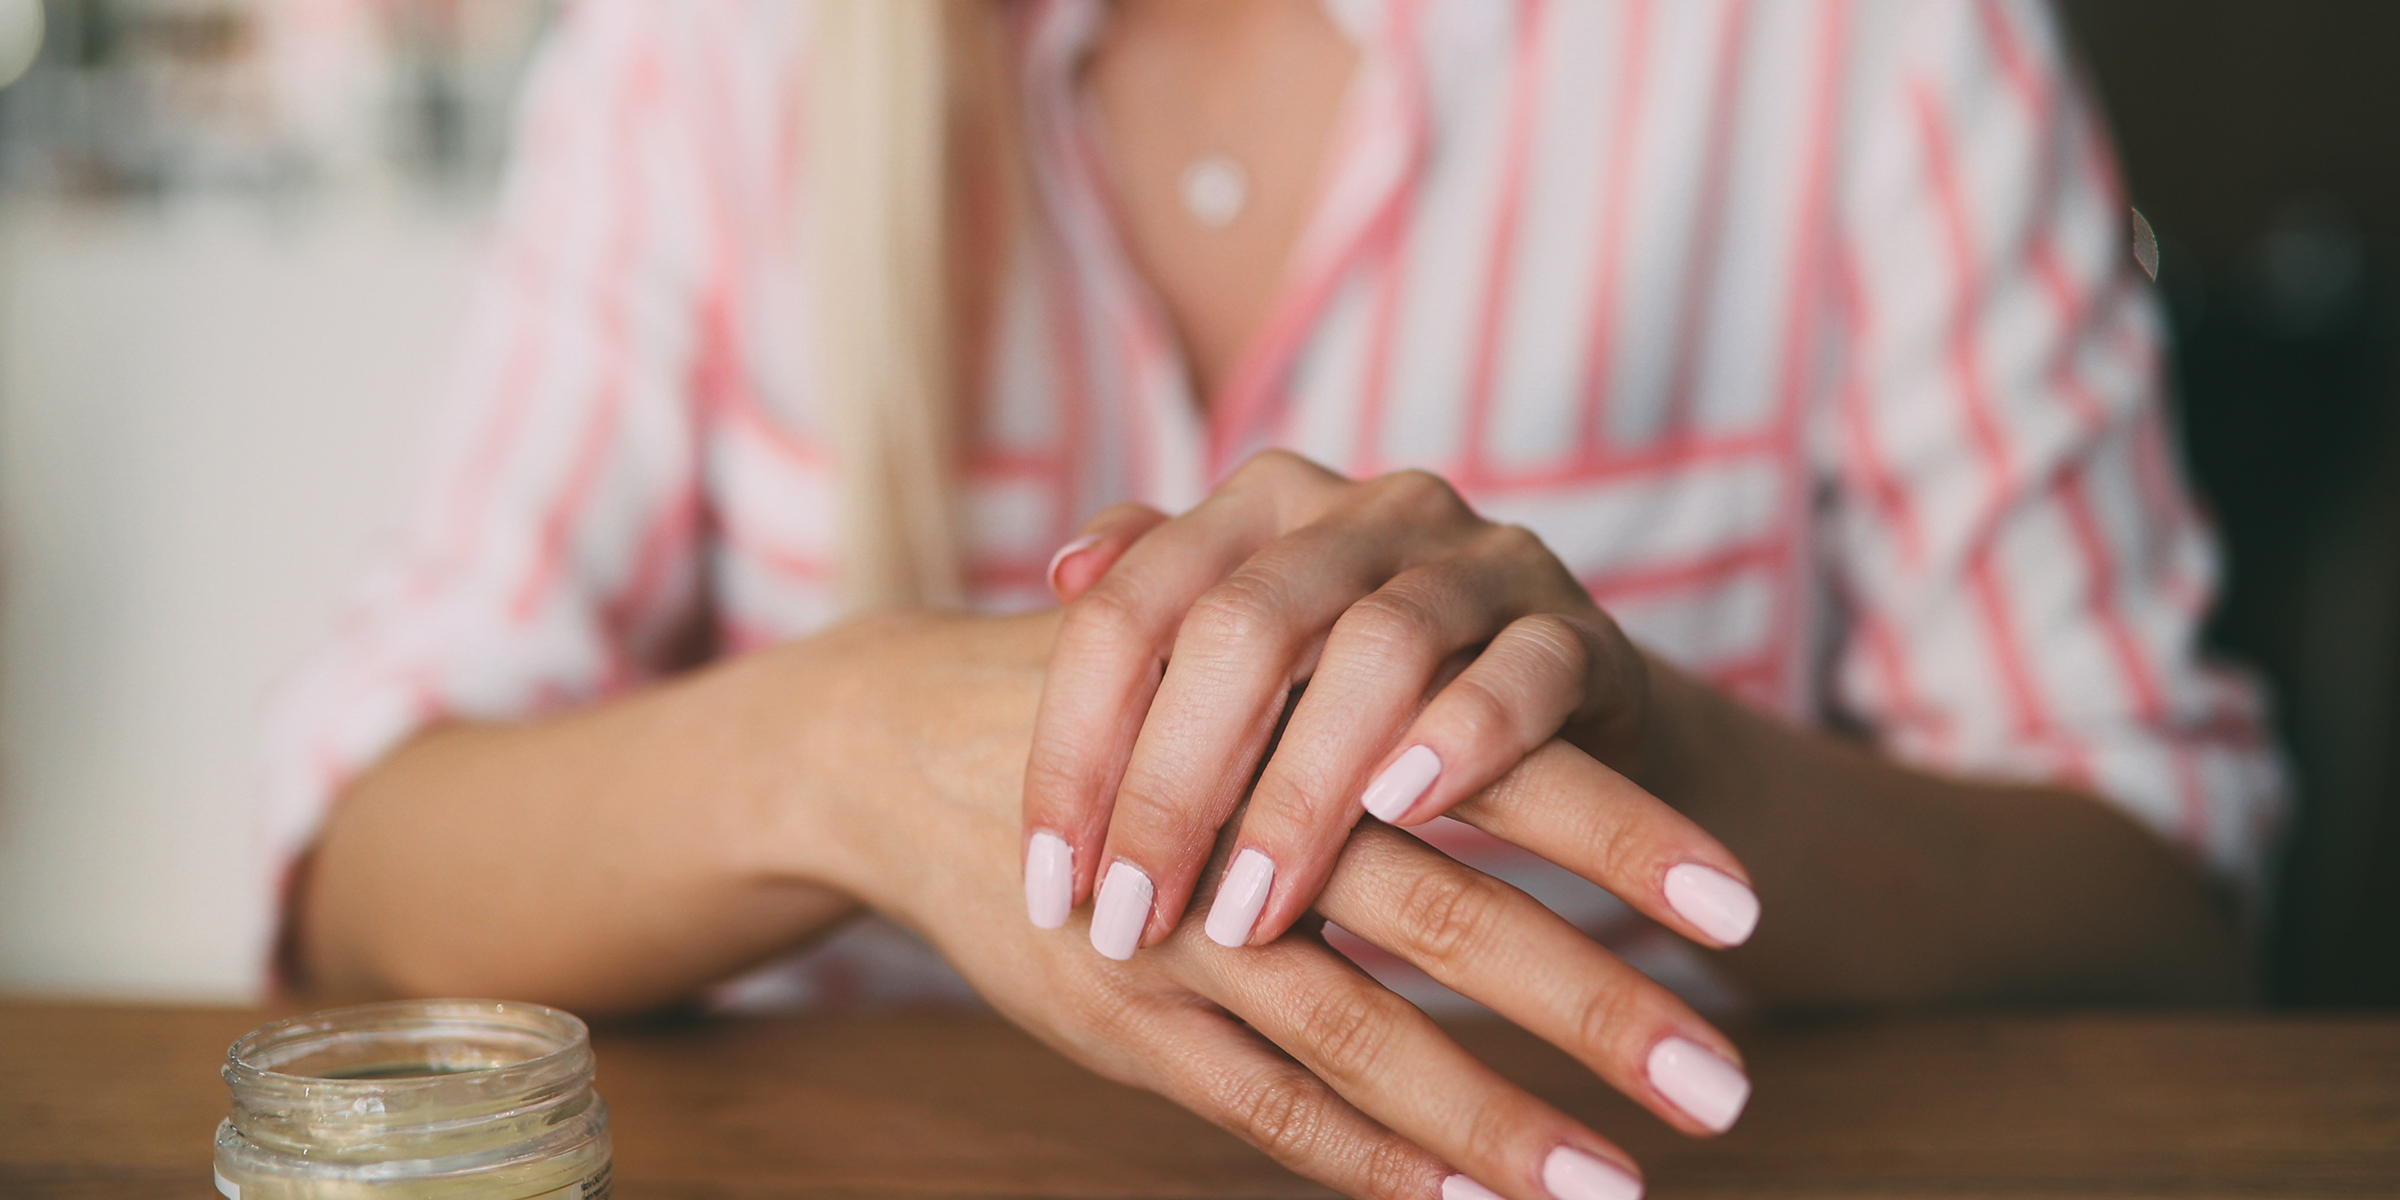 Start an anti-aging hand care routine to prevent aging hands